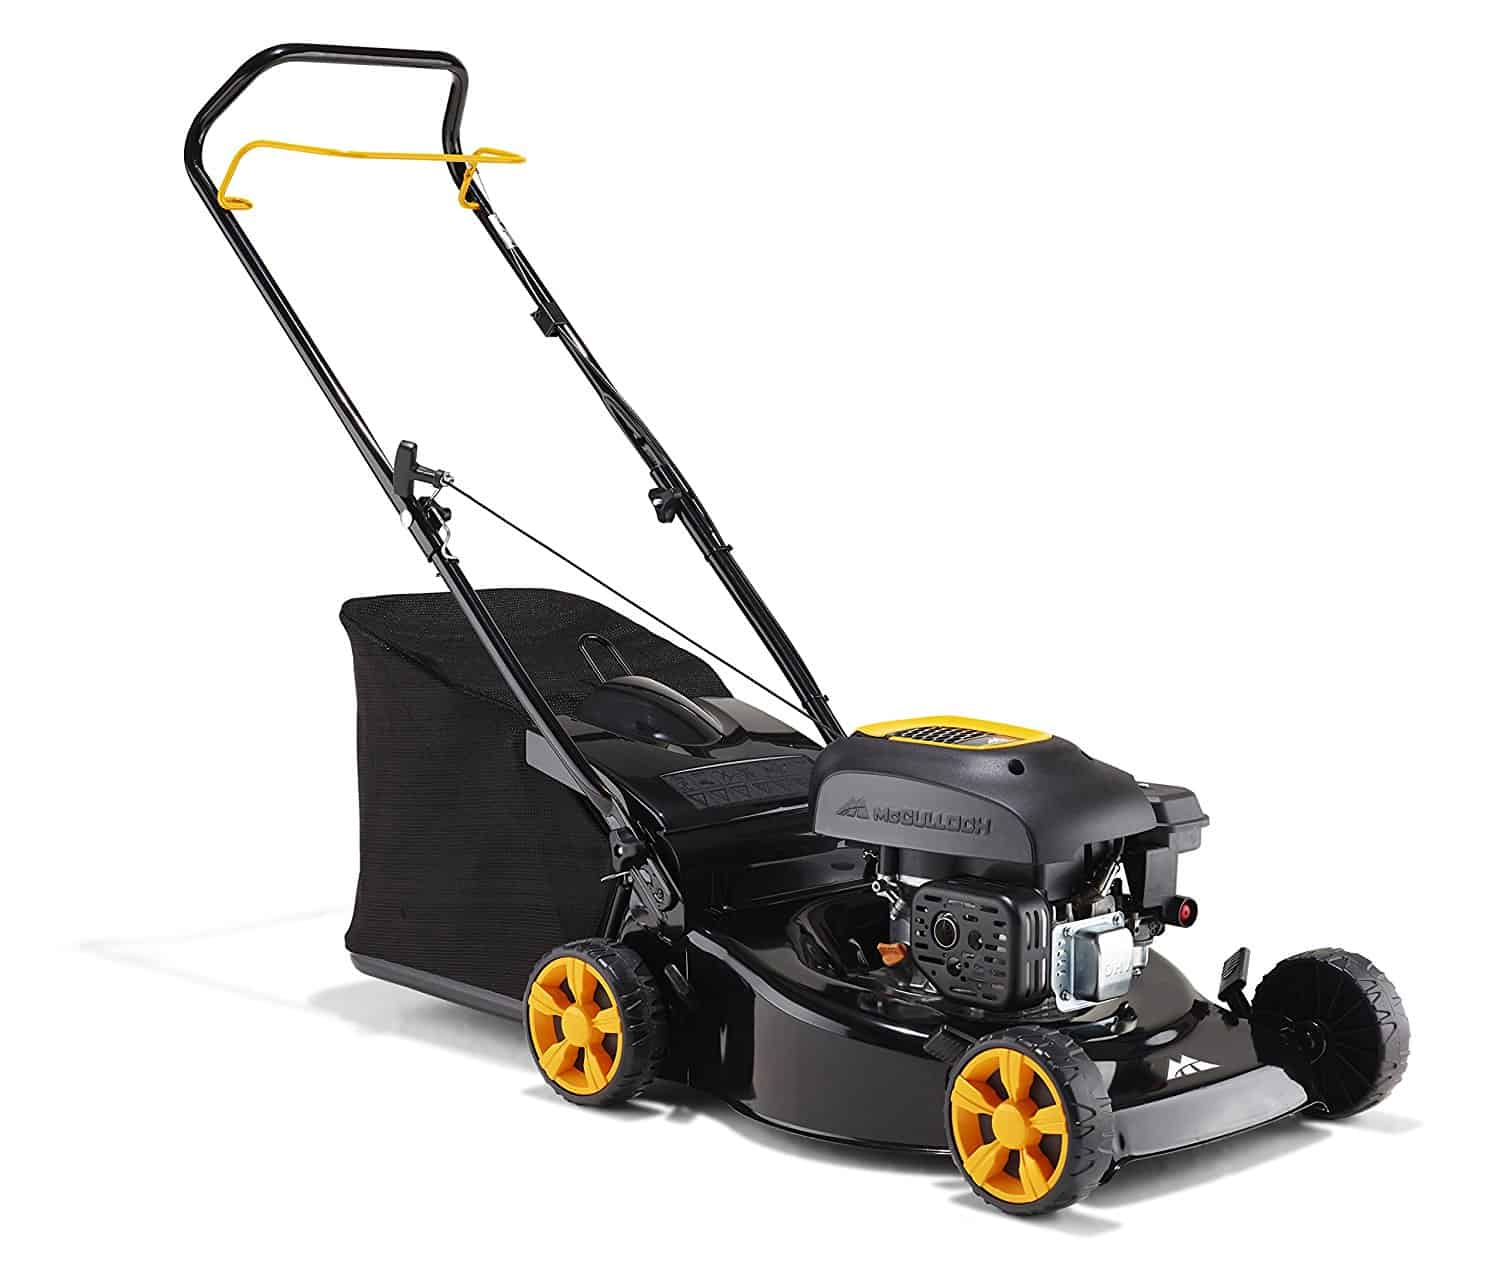 Best Petrol Lawn Mower for Large Gardens – McCulloch